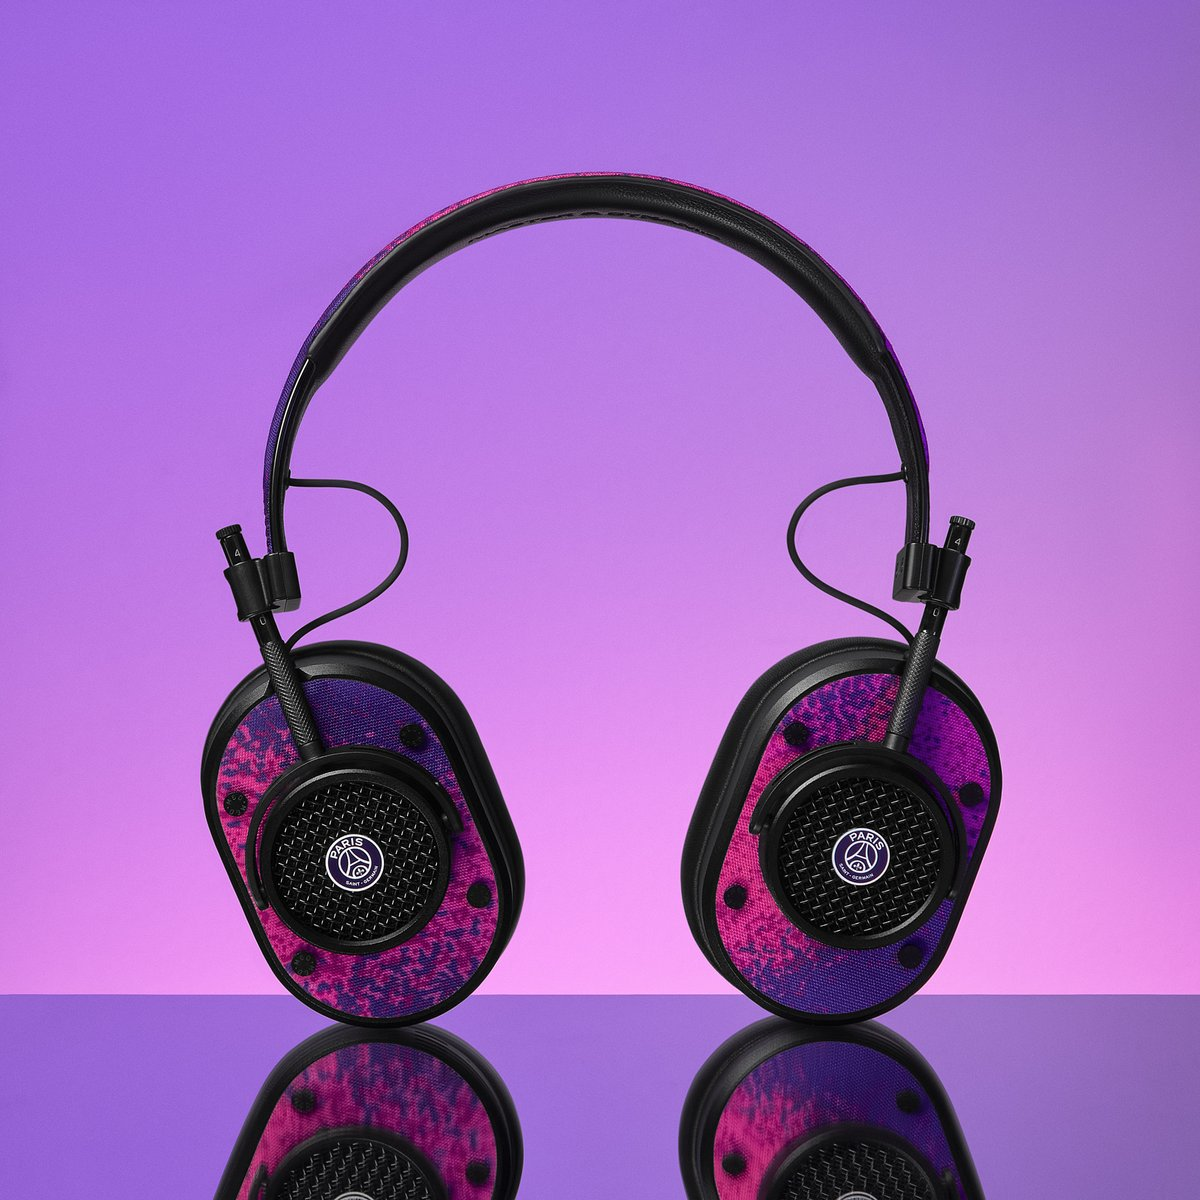 Introducing #MasterDynamic for @PSG_inside, a limited-edition collection of sound tools featuring a galaxy-inspired design created by #ParisSaintGermain:   #PSGxJORDAN